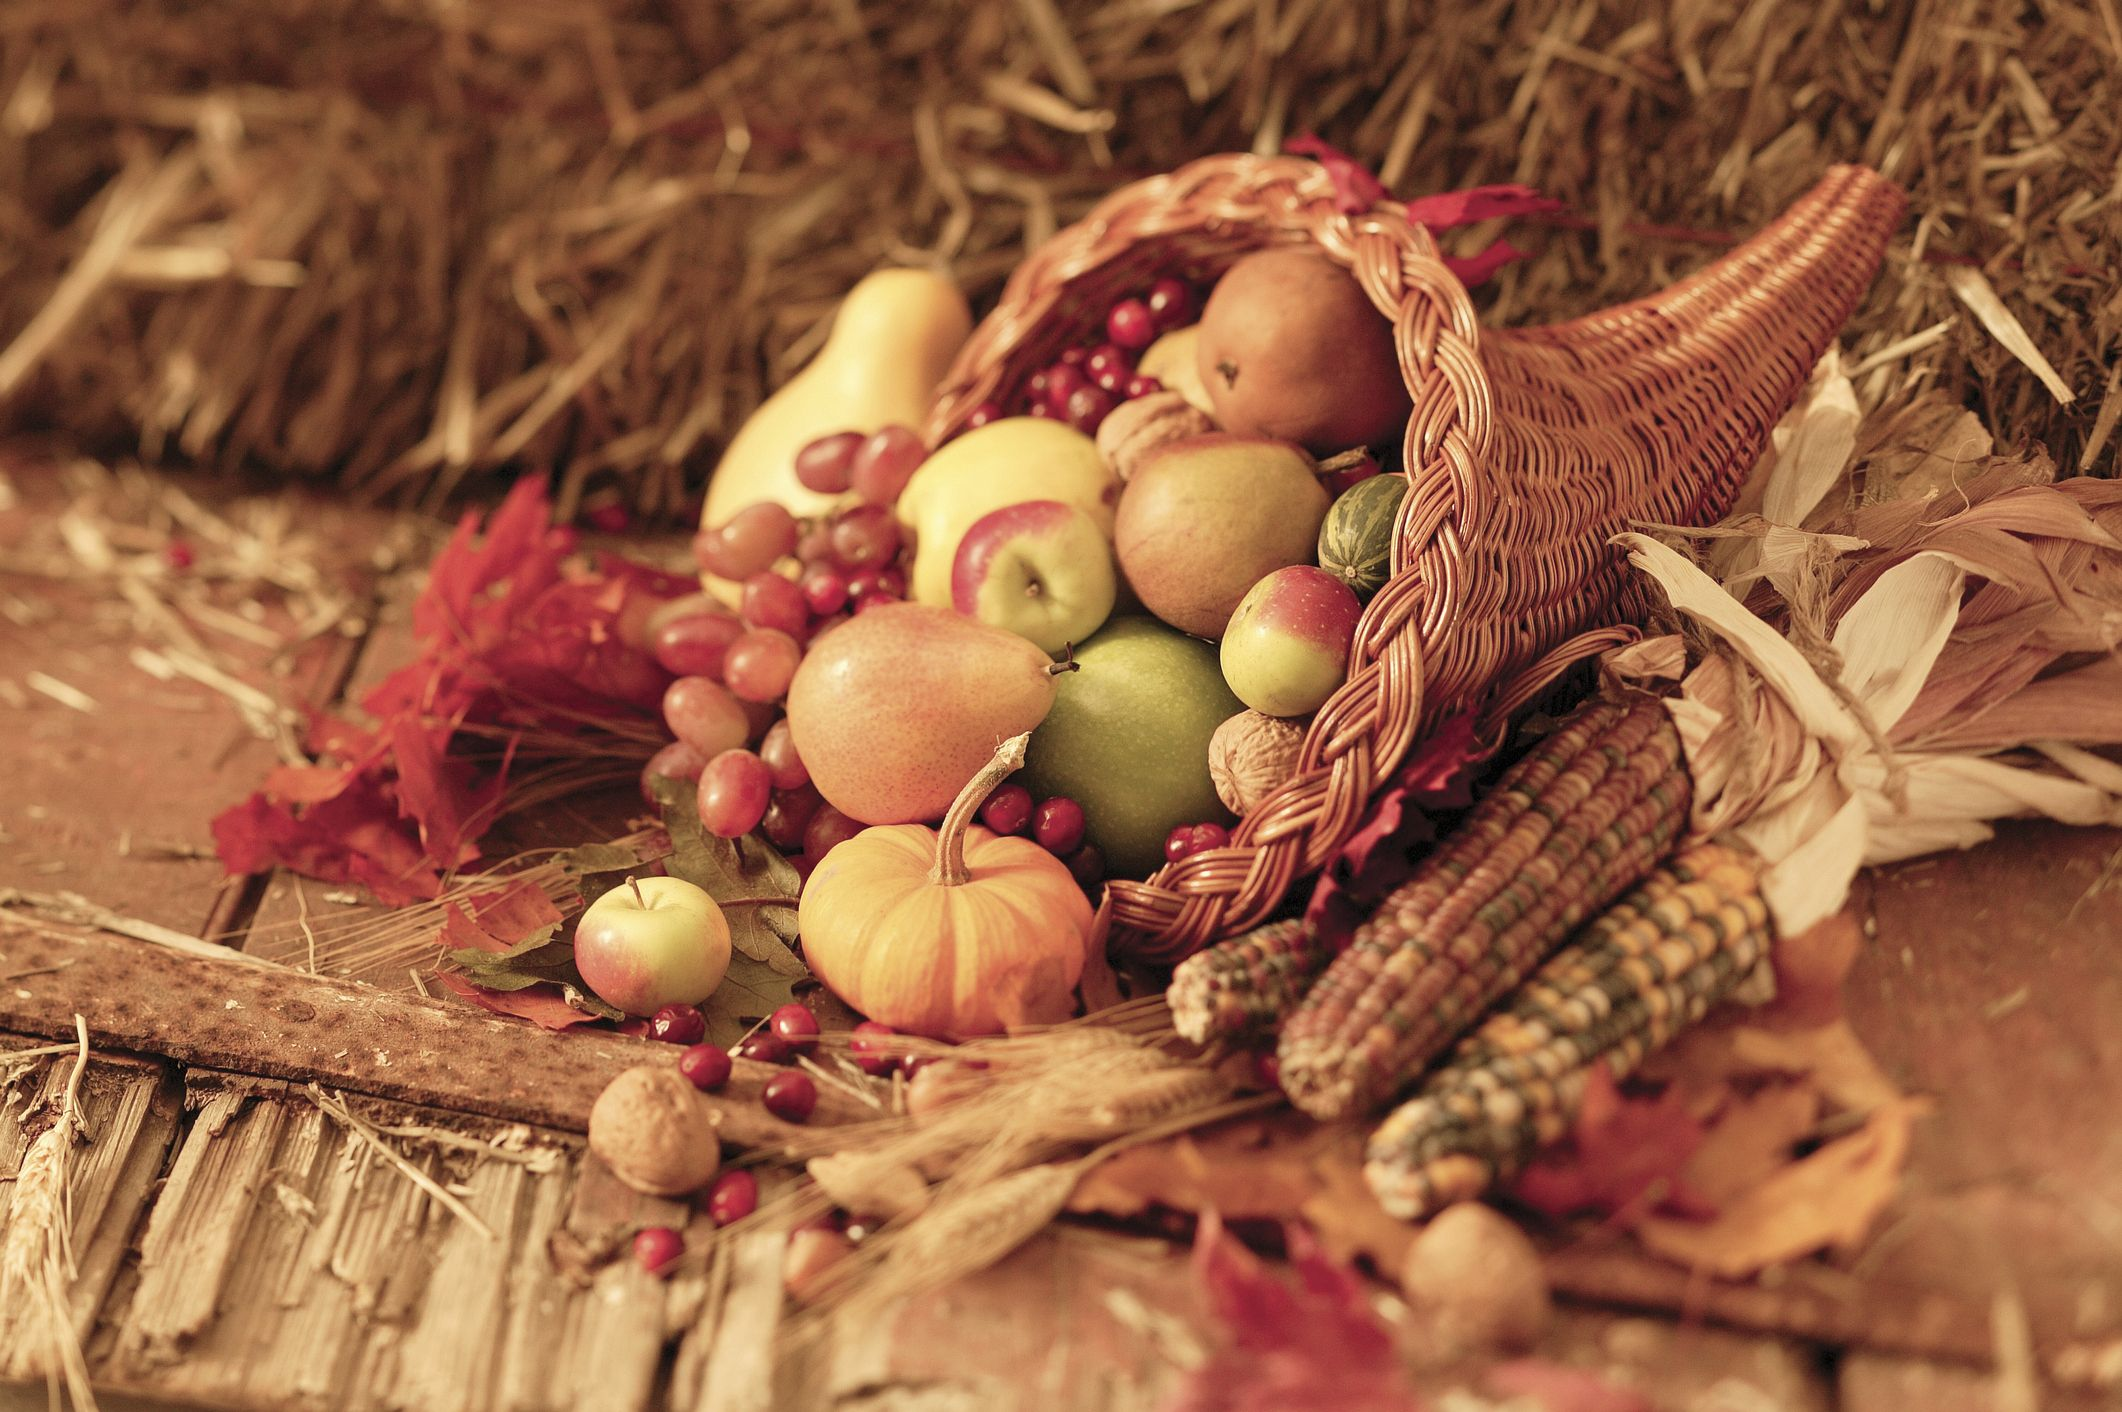 Thanksgiving Cornucopia Meaning: Why Is the Horn of Plenty a Symbol of Thanksgiving?